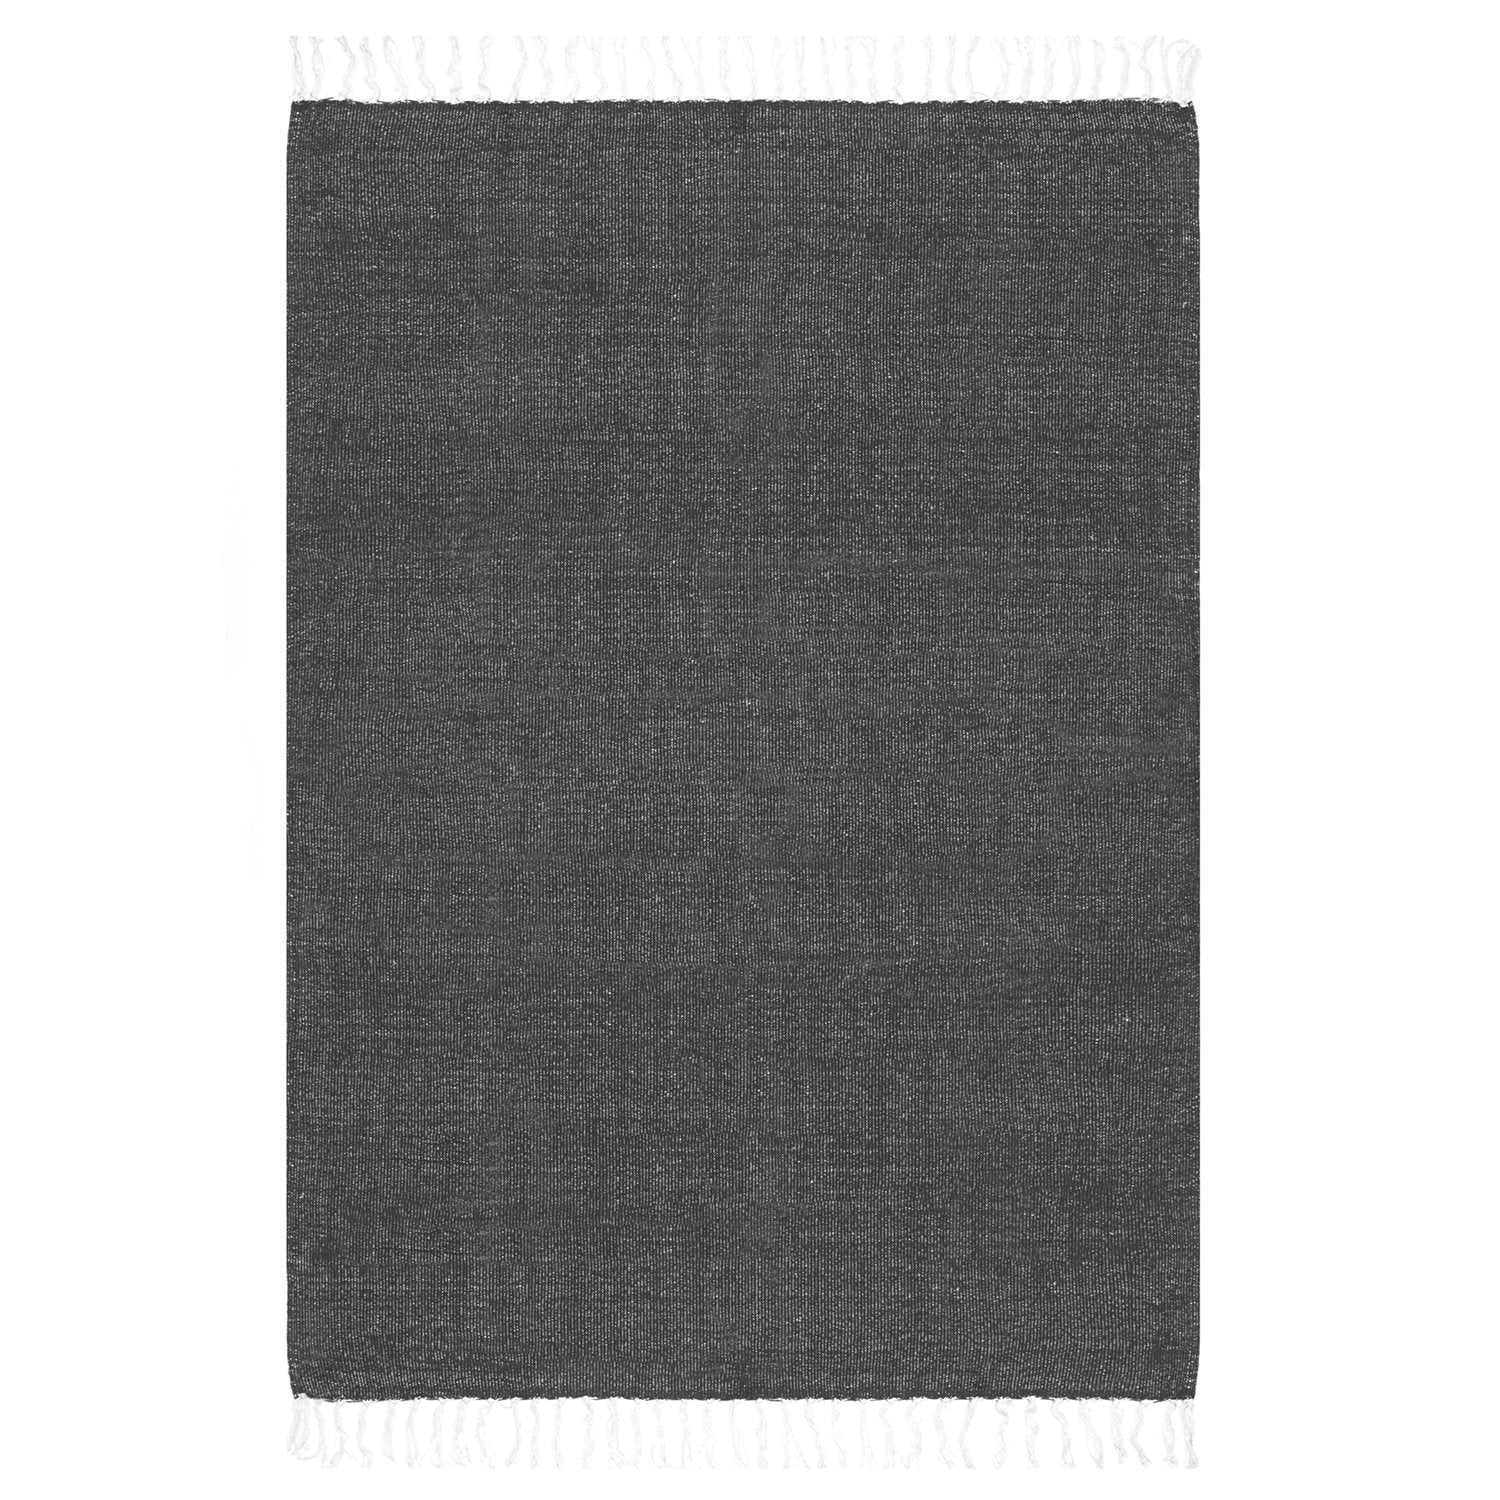 Authentic Yoga and Mexican Falsa Blanket - Blanket - Americanflat